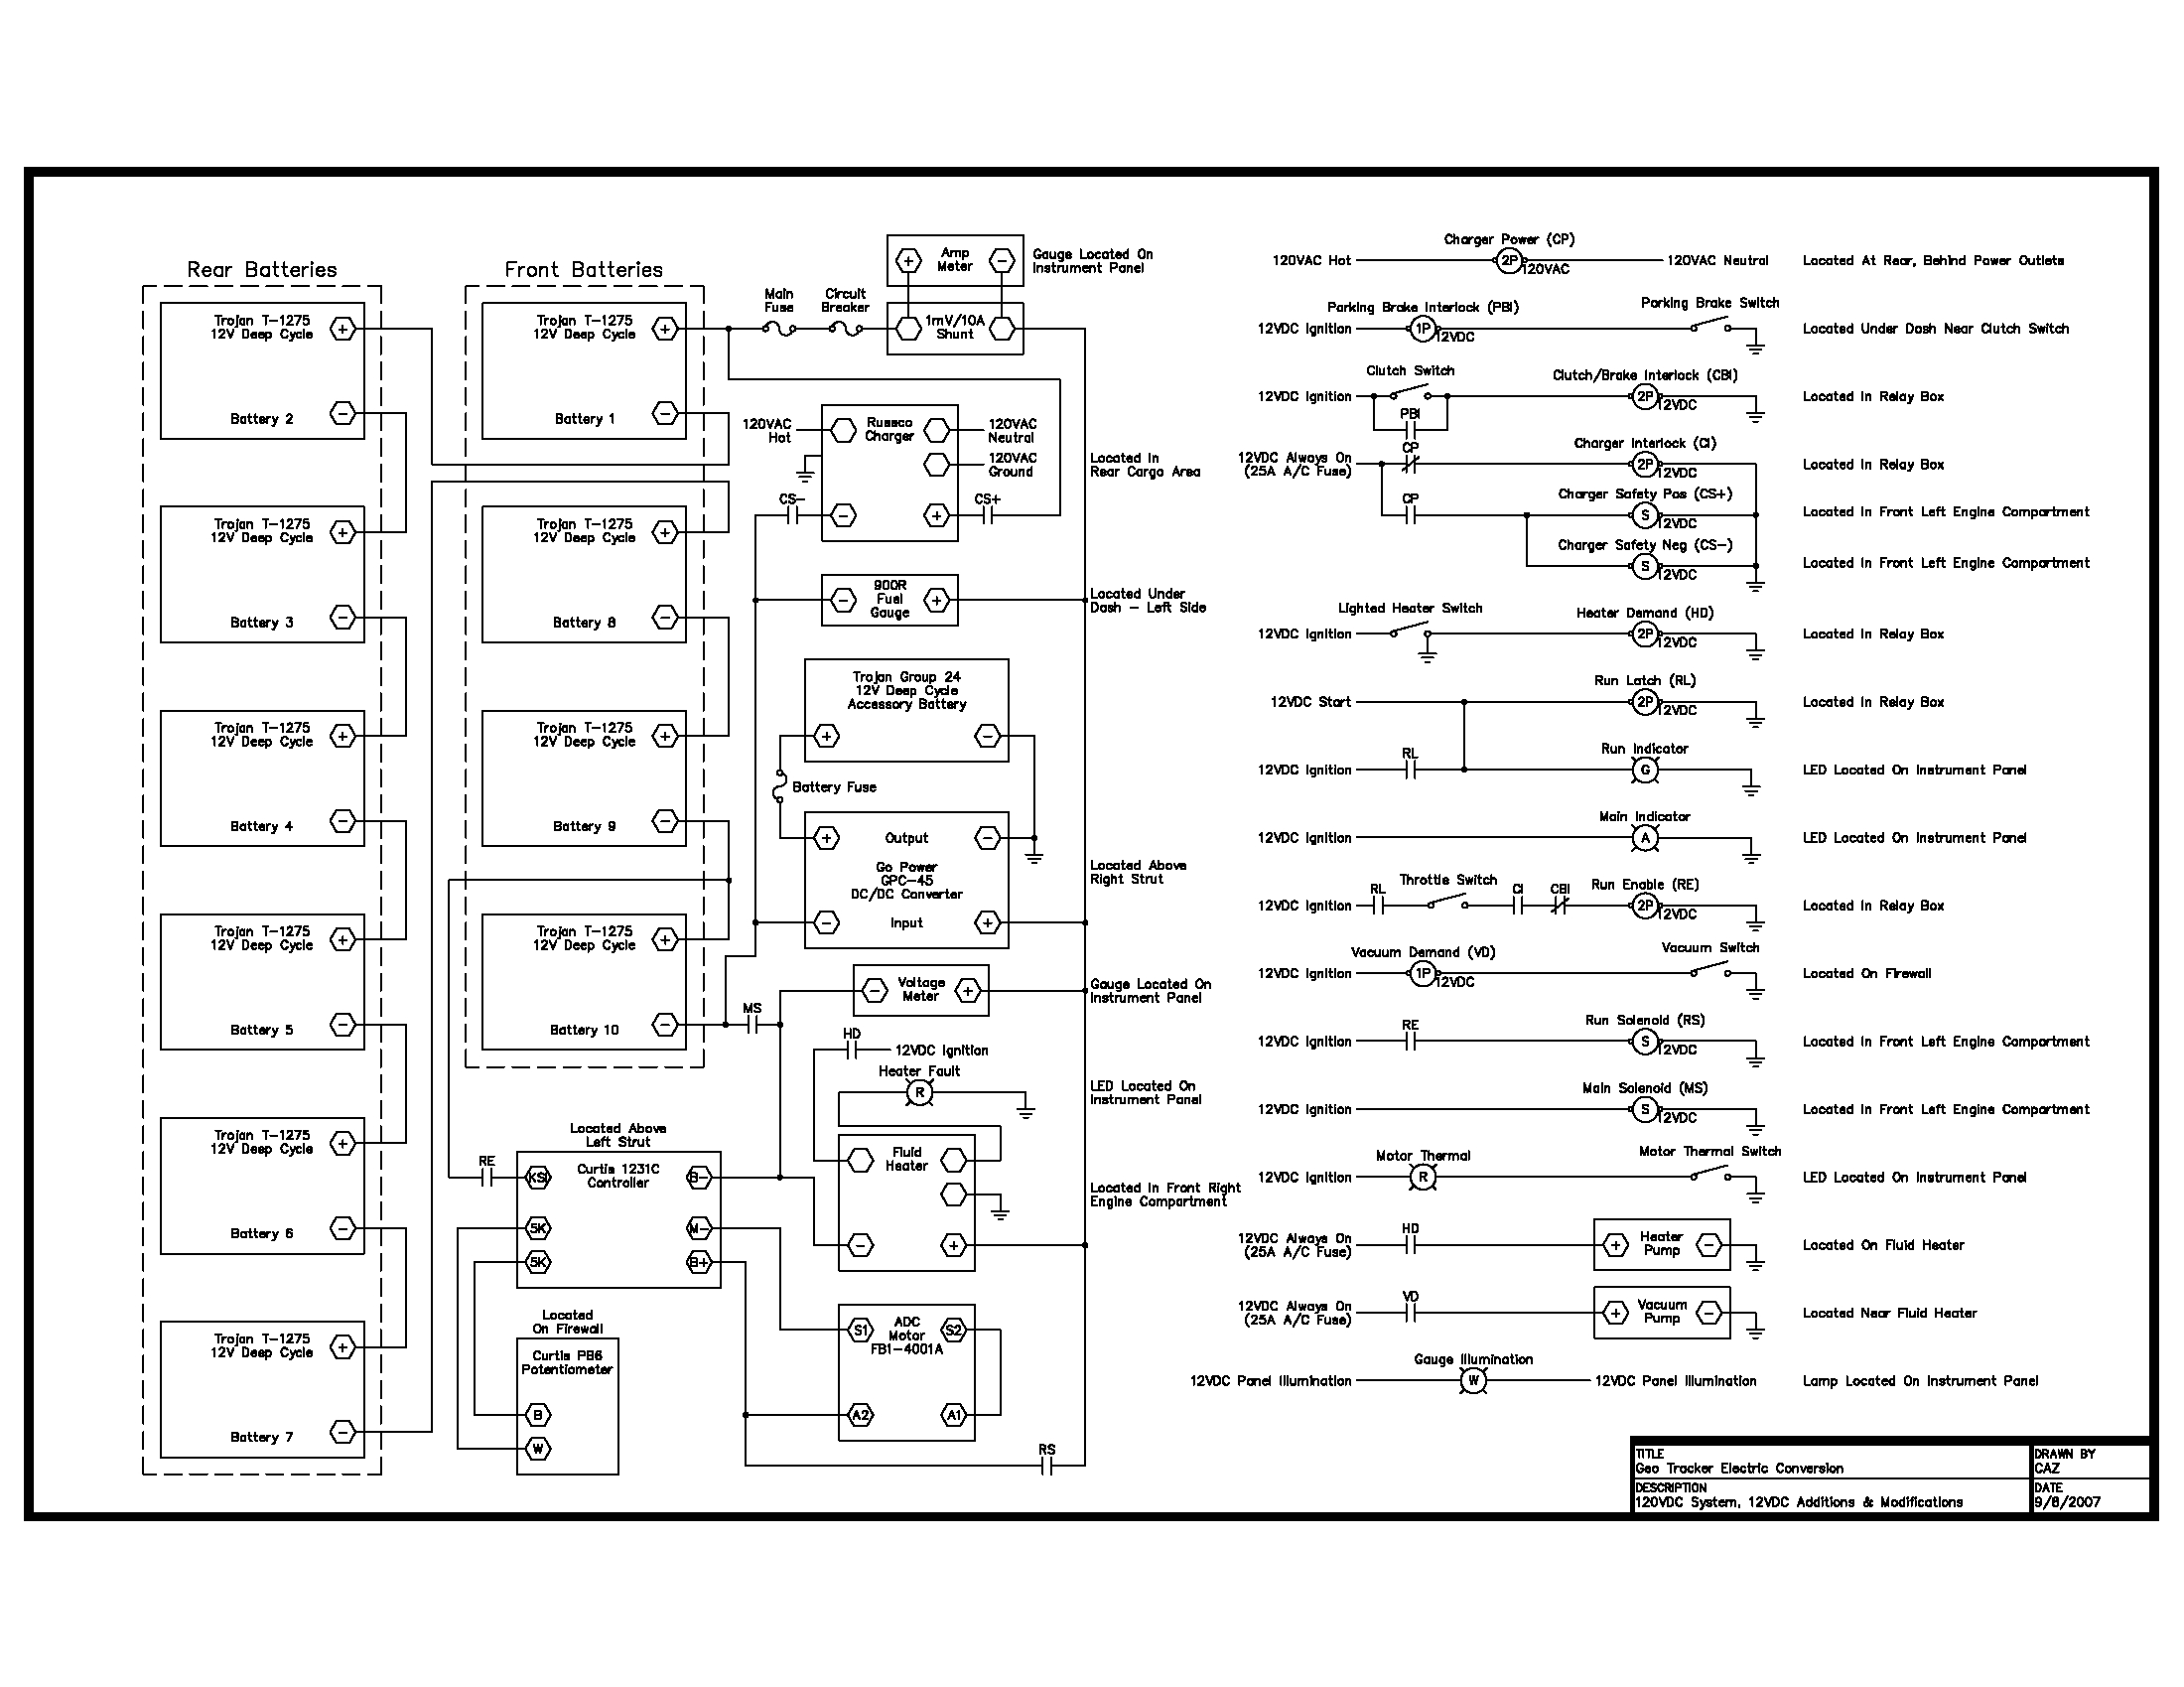 Electrical Wiring Diagram Automotive | Wiring Library - Automotive Wiring Diagram Software